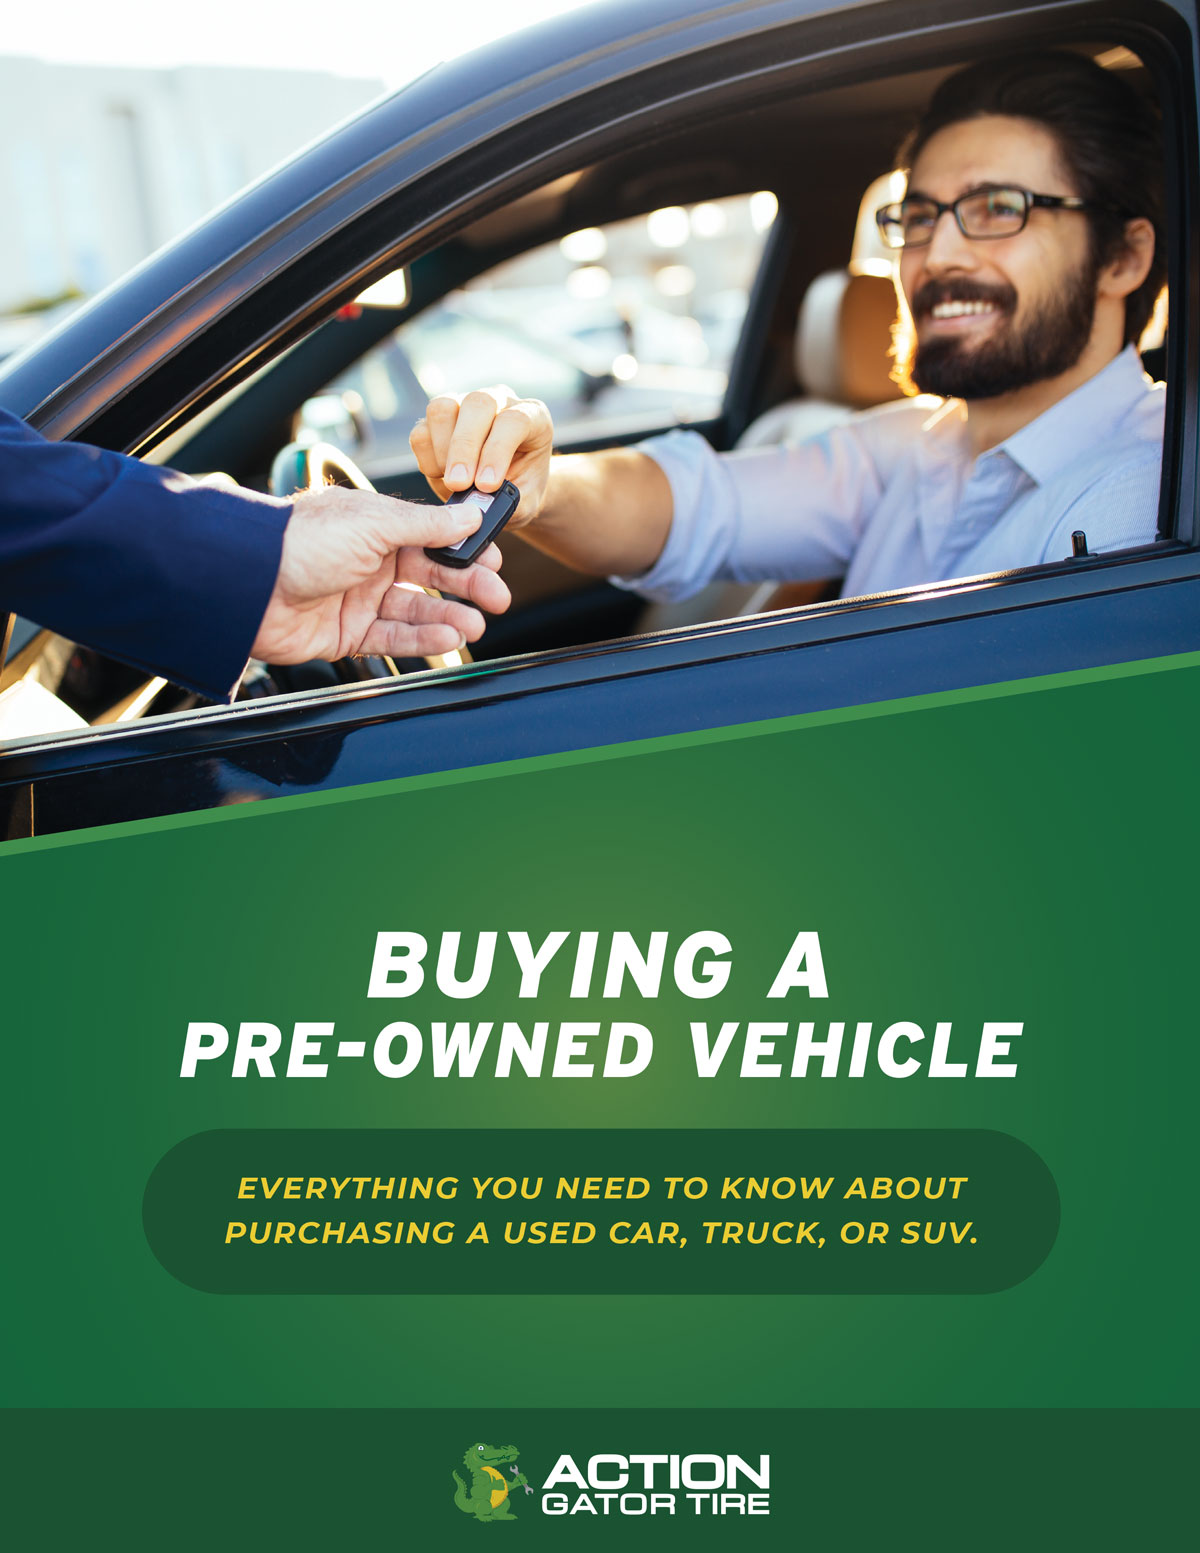 Buying a Pre-Owned Vehicle Guide